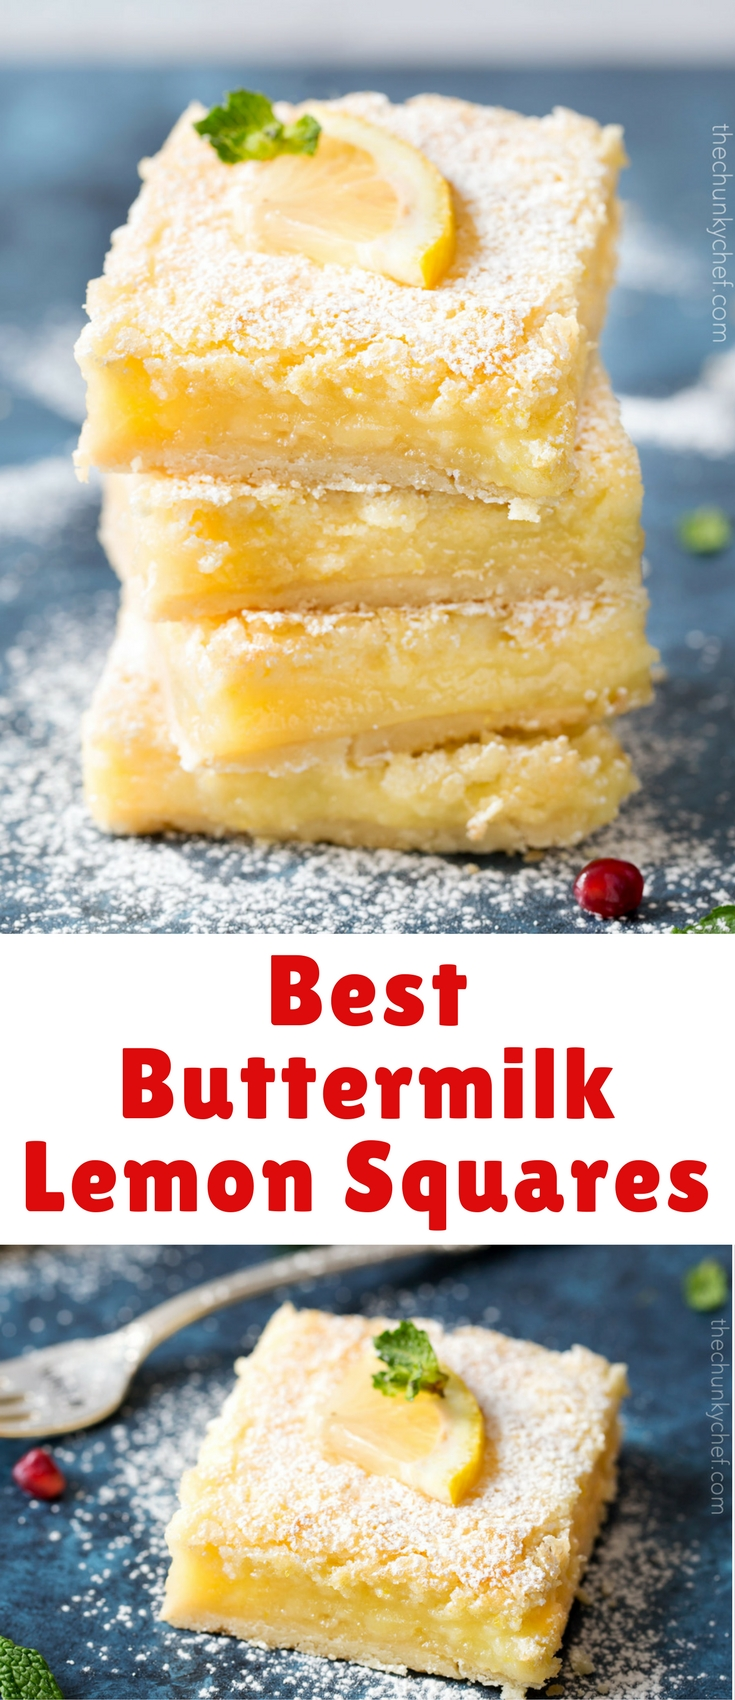 Bright, tangy, and creamy… these lemon squares are foolproof. A buttery crust is topped with a creamy lemon filling, for a light and easy dessert!